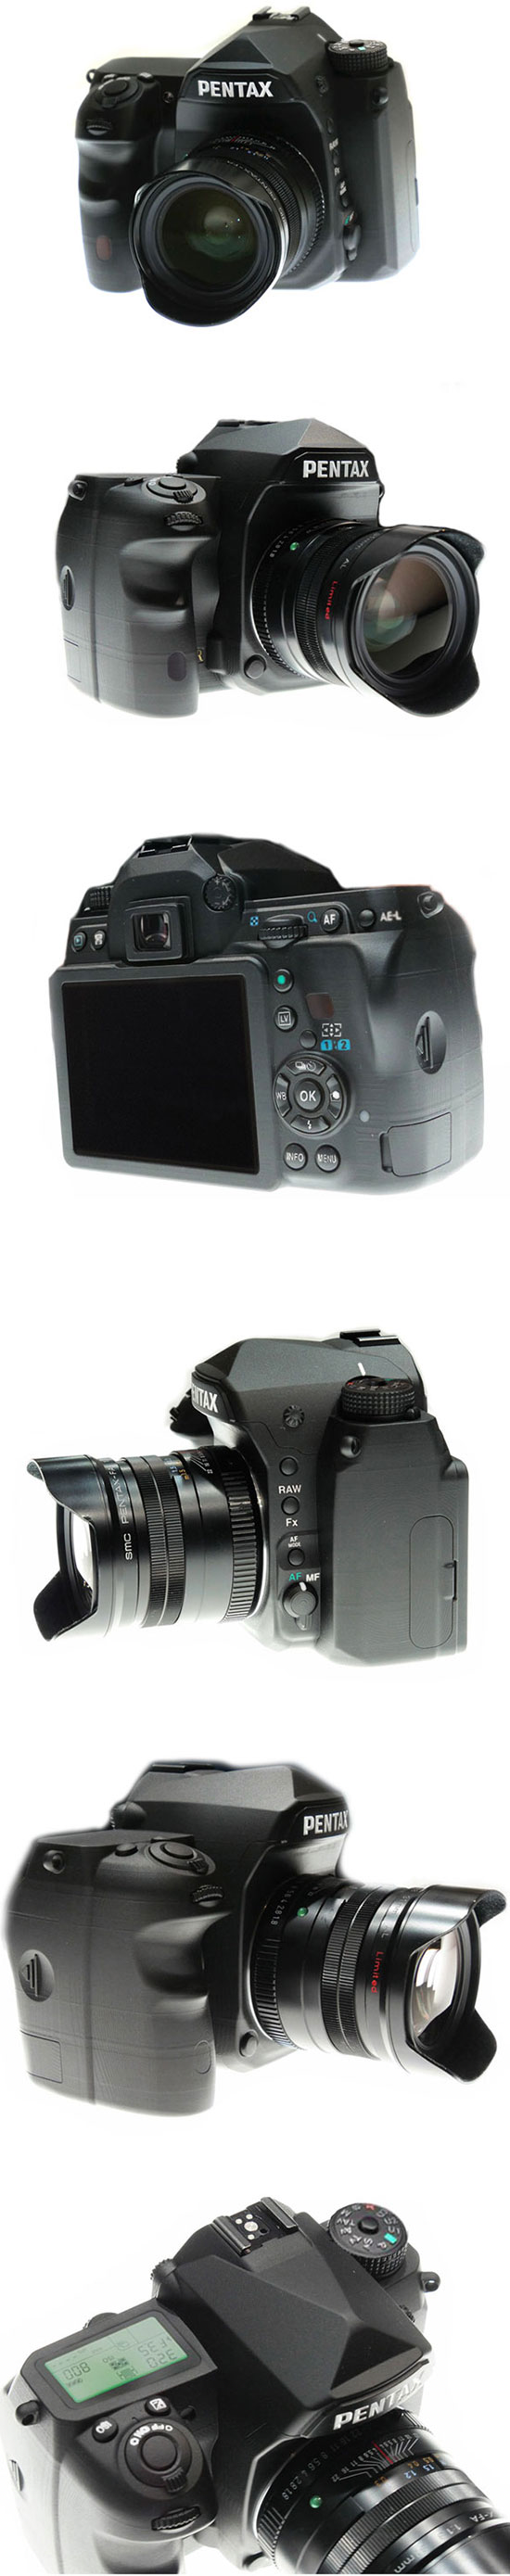 Pentax-full-frame-DSLR-camera